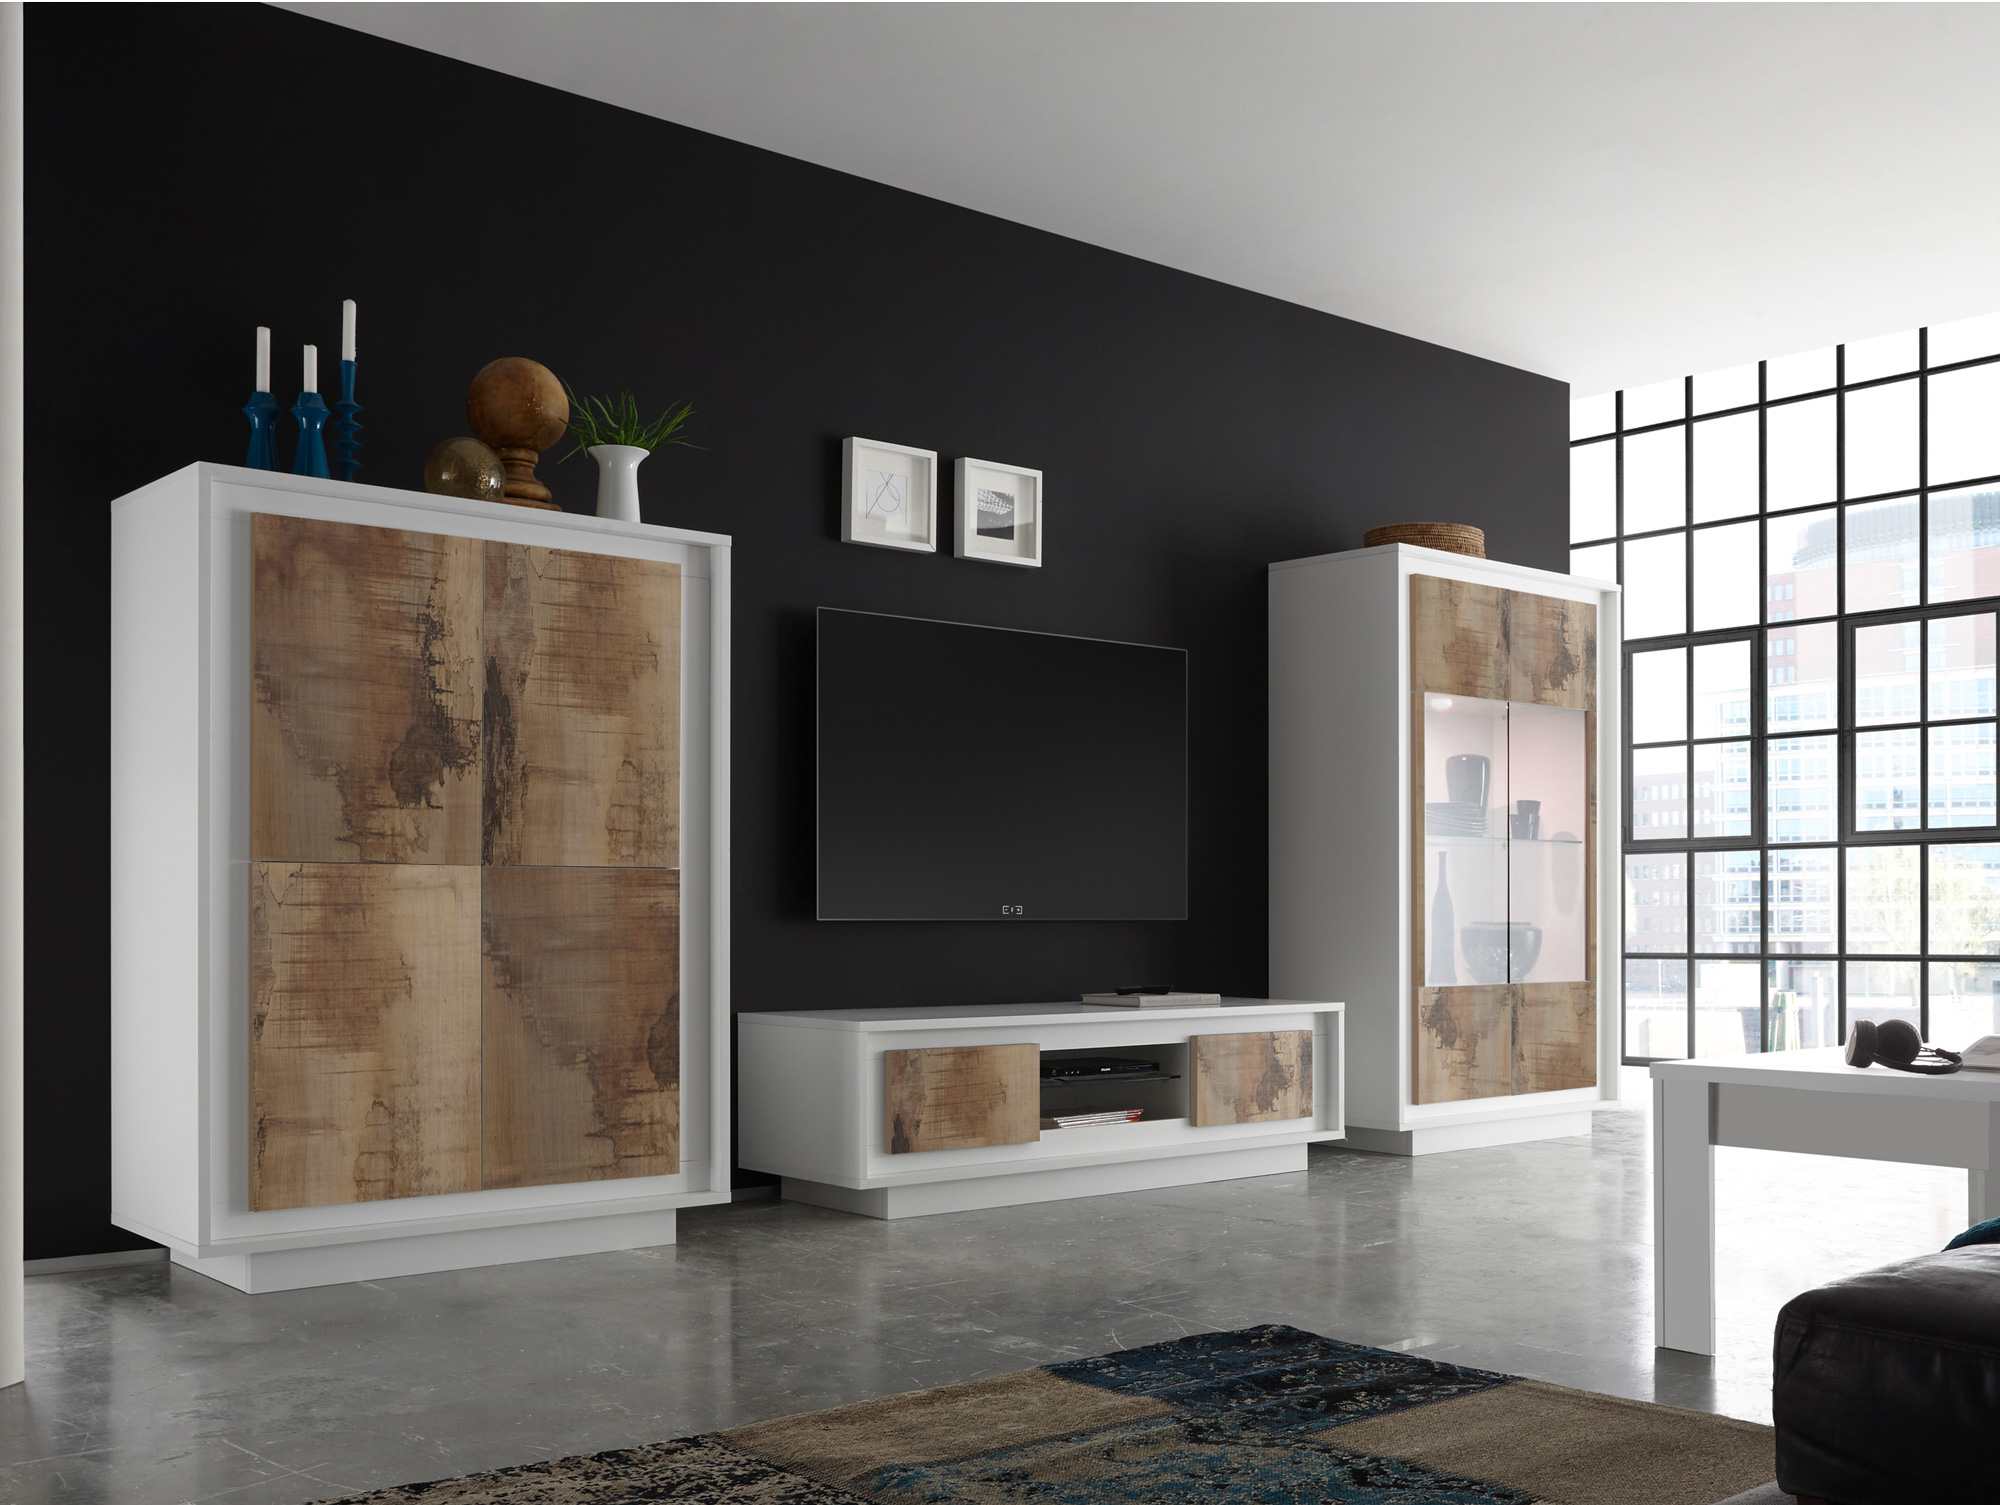 santafee wohnwand weiss pero braun. Black Bedroom Furniture Sets. Home Design Ideas